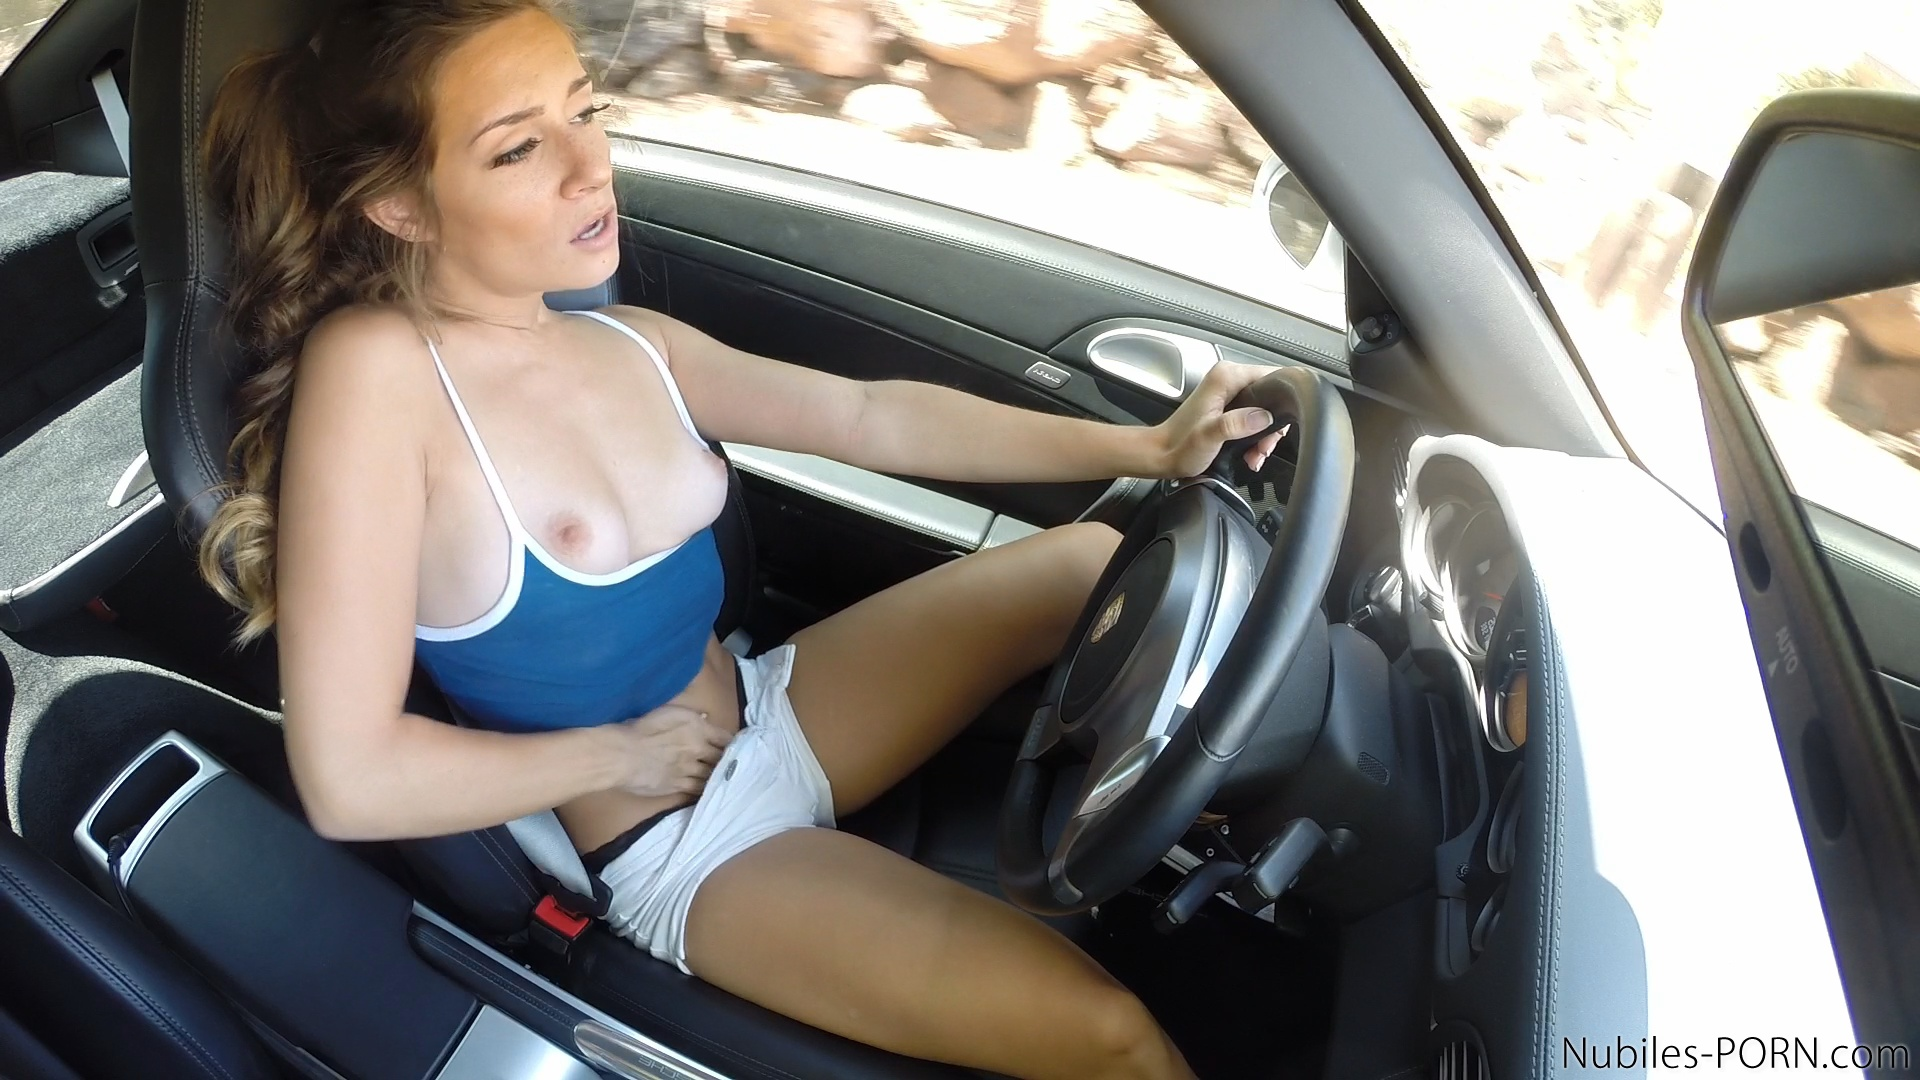 from Bronson sexy girls having sex in a car